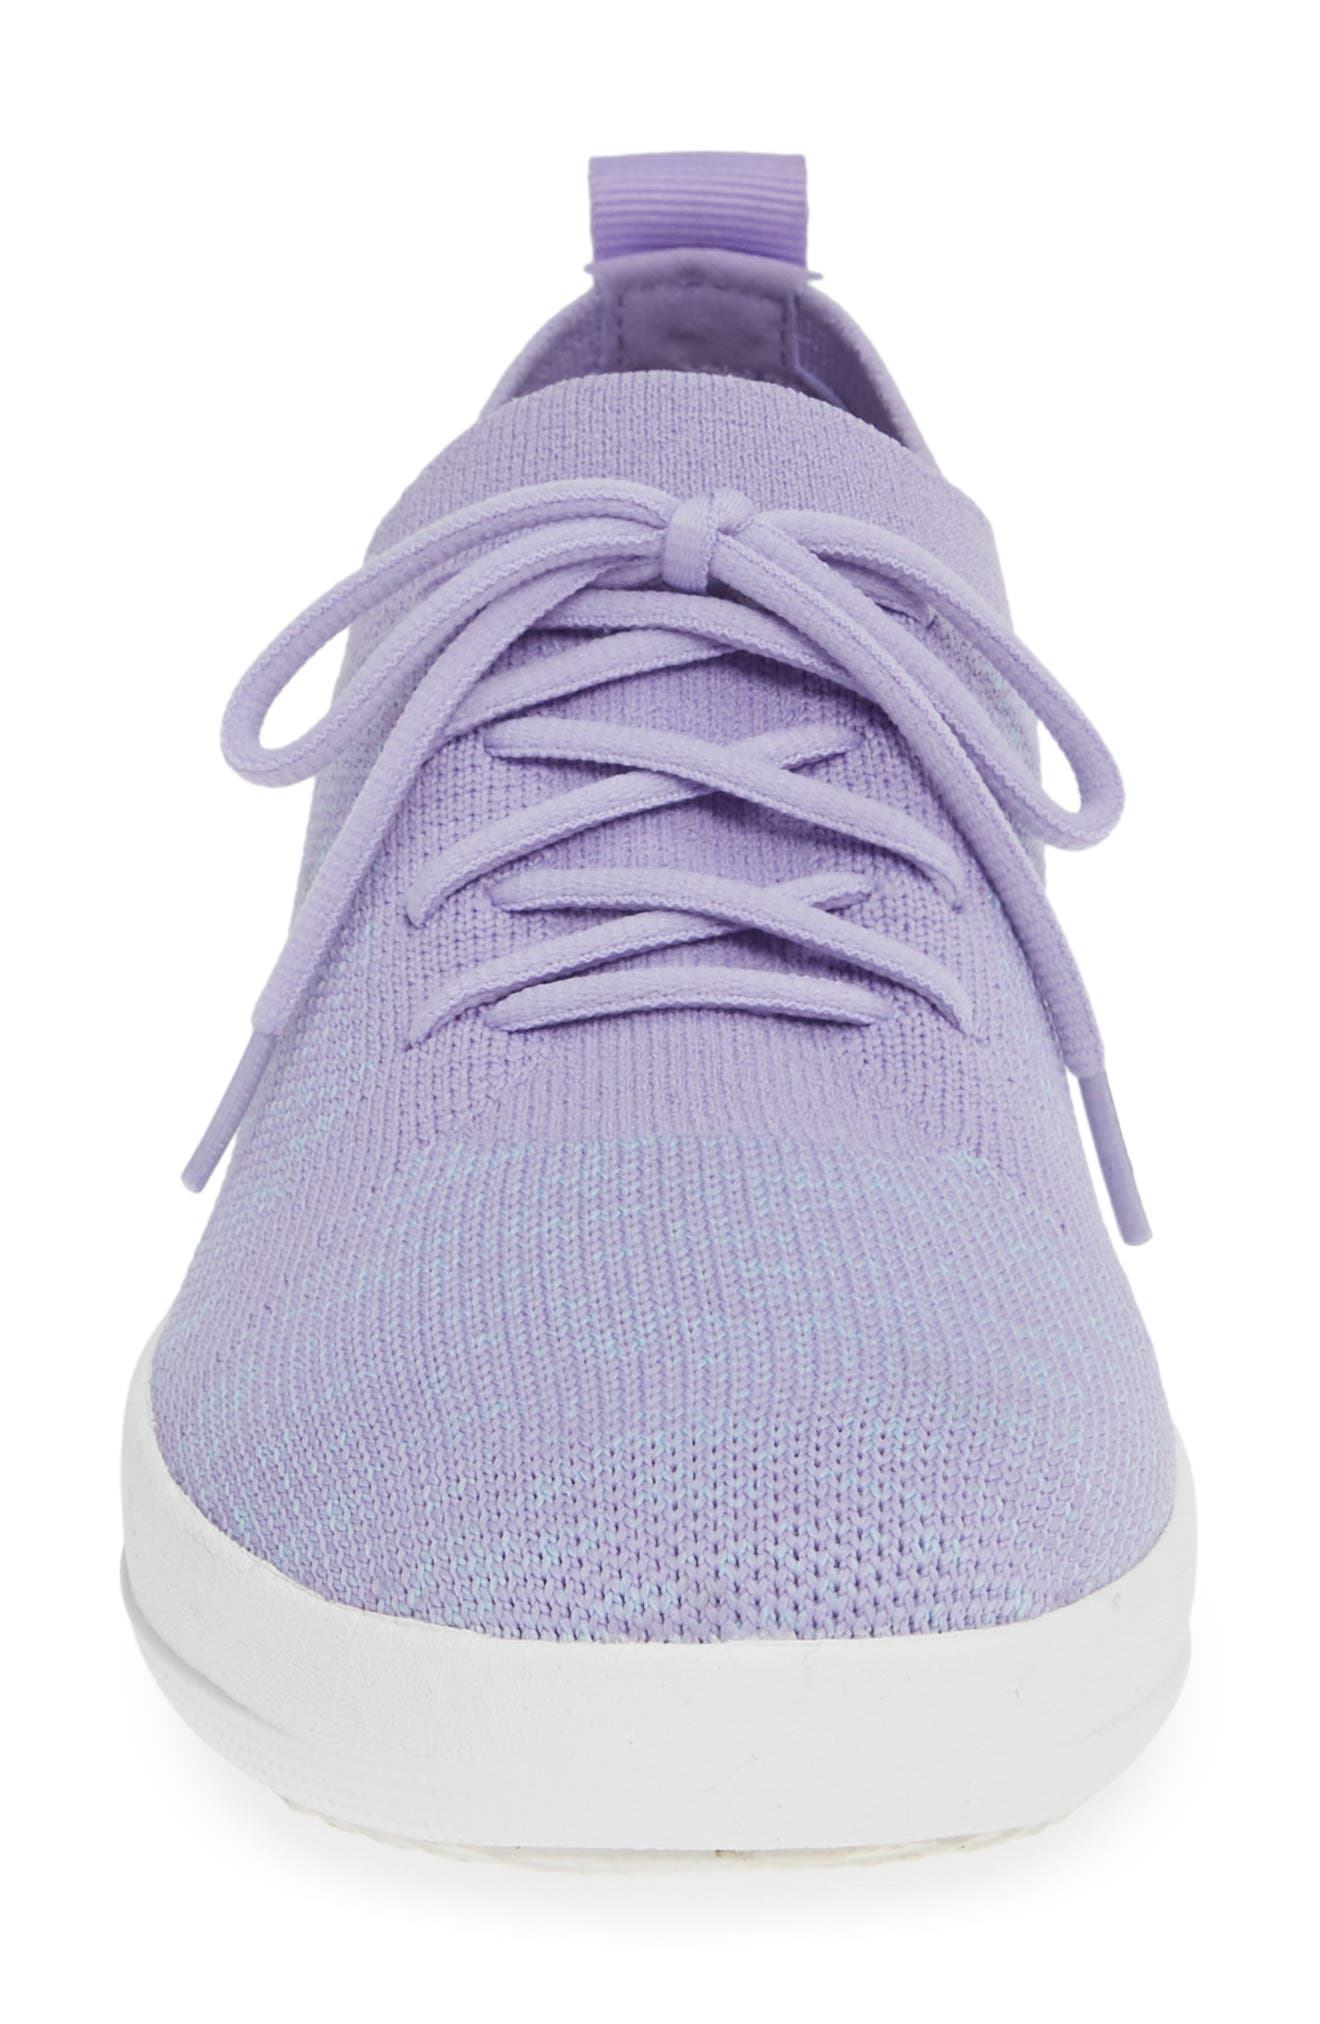 F-Sporty Uberknit<sup>™</sup> Sneaker,                             Alternate thumbnail 4, color,                             FROSTED LAVENDER MIX